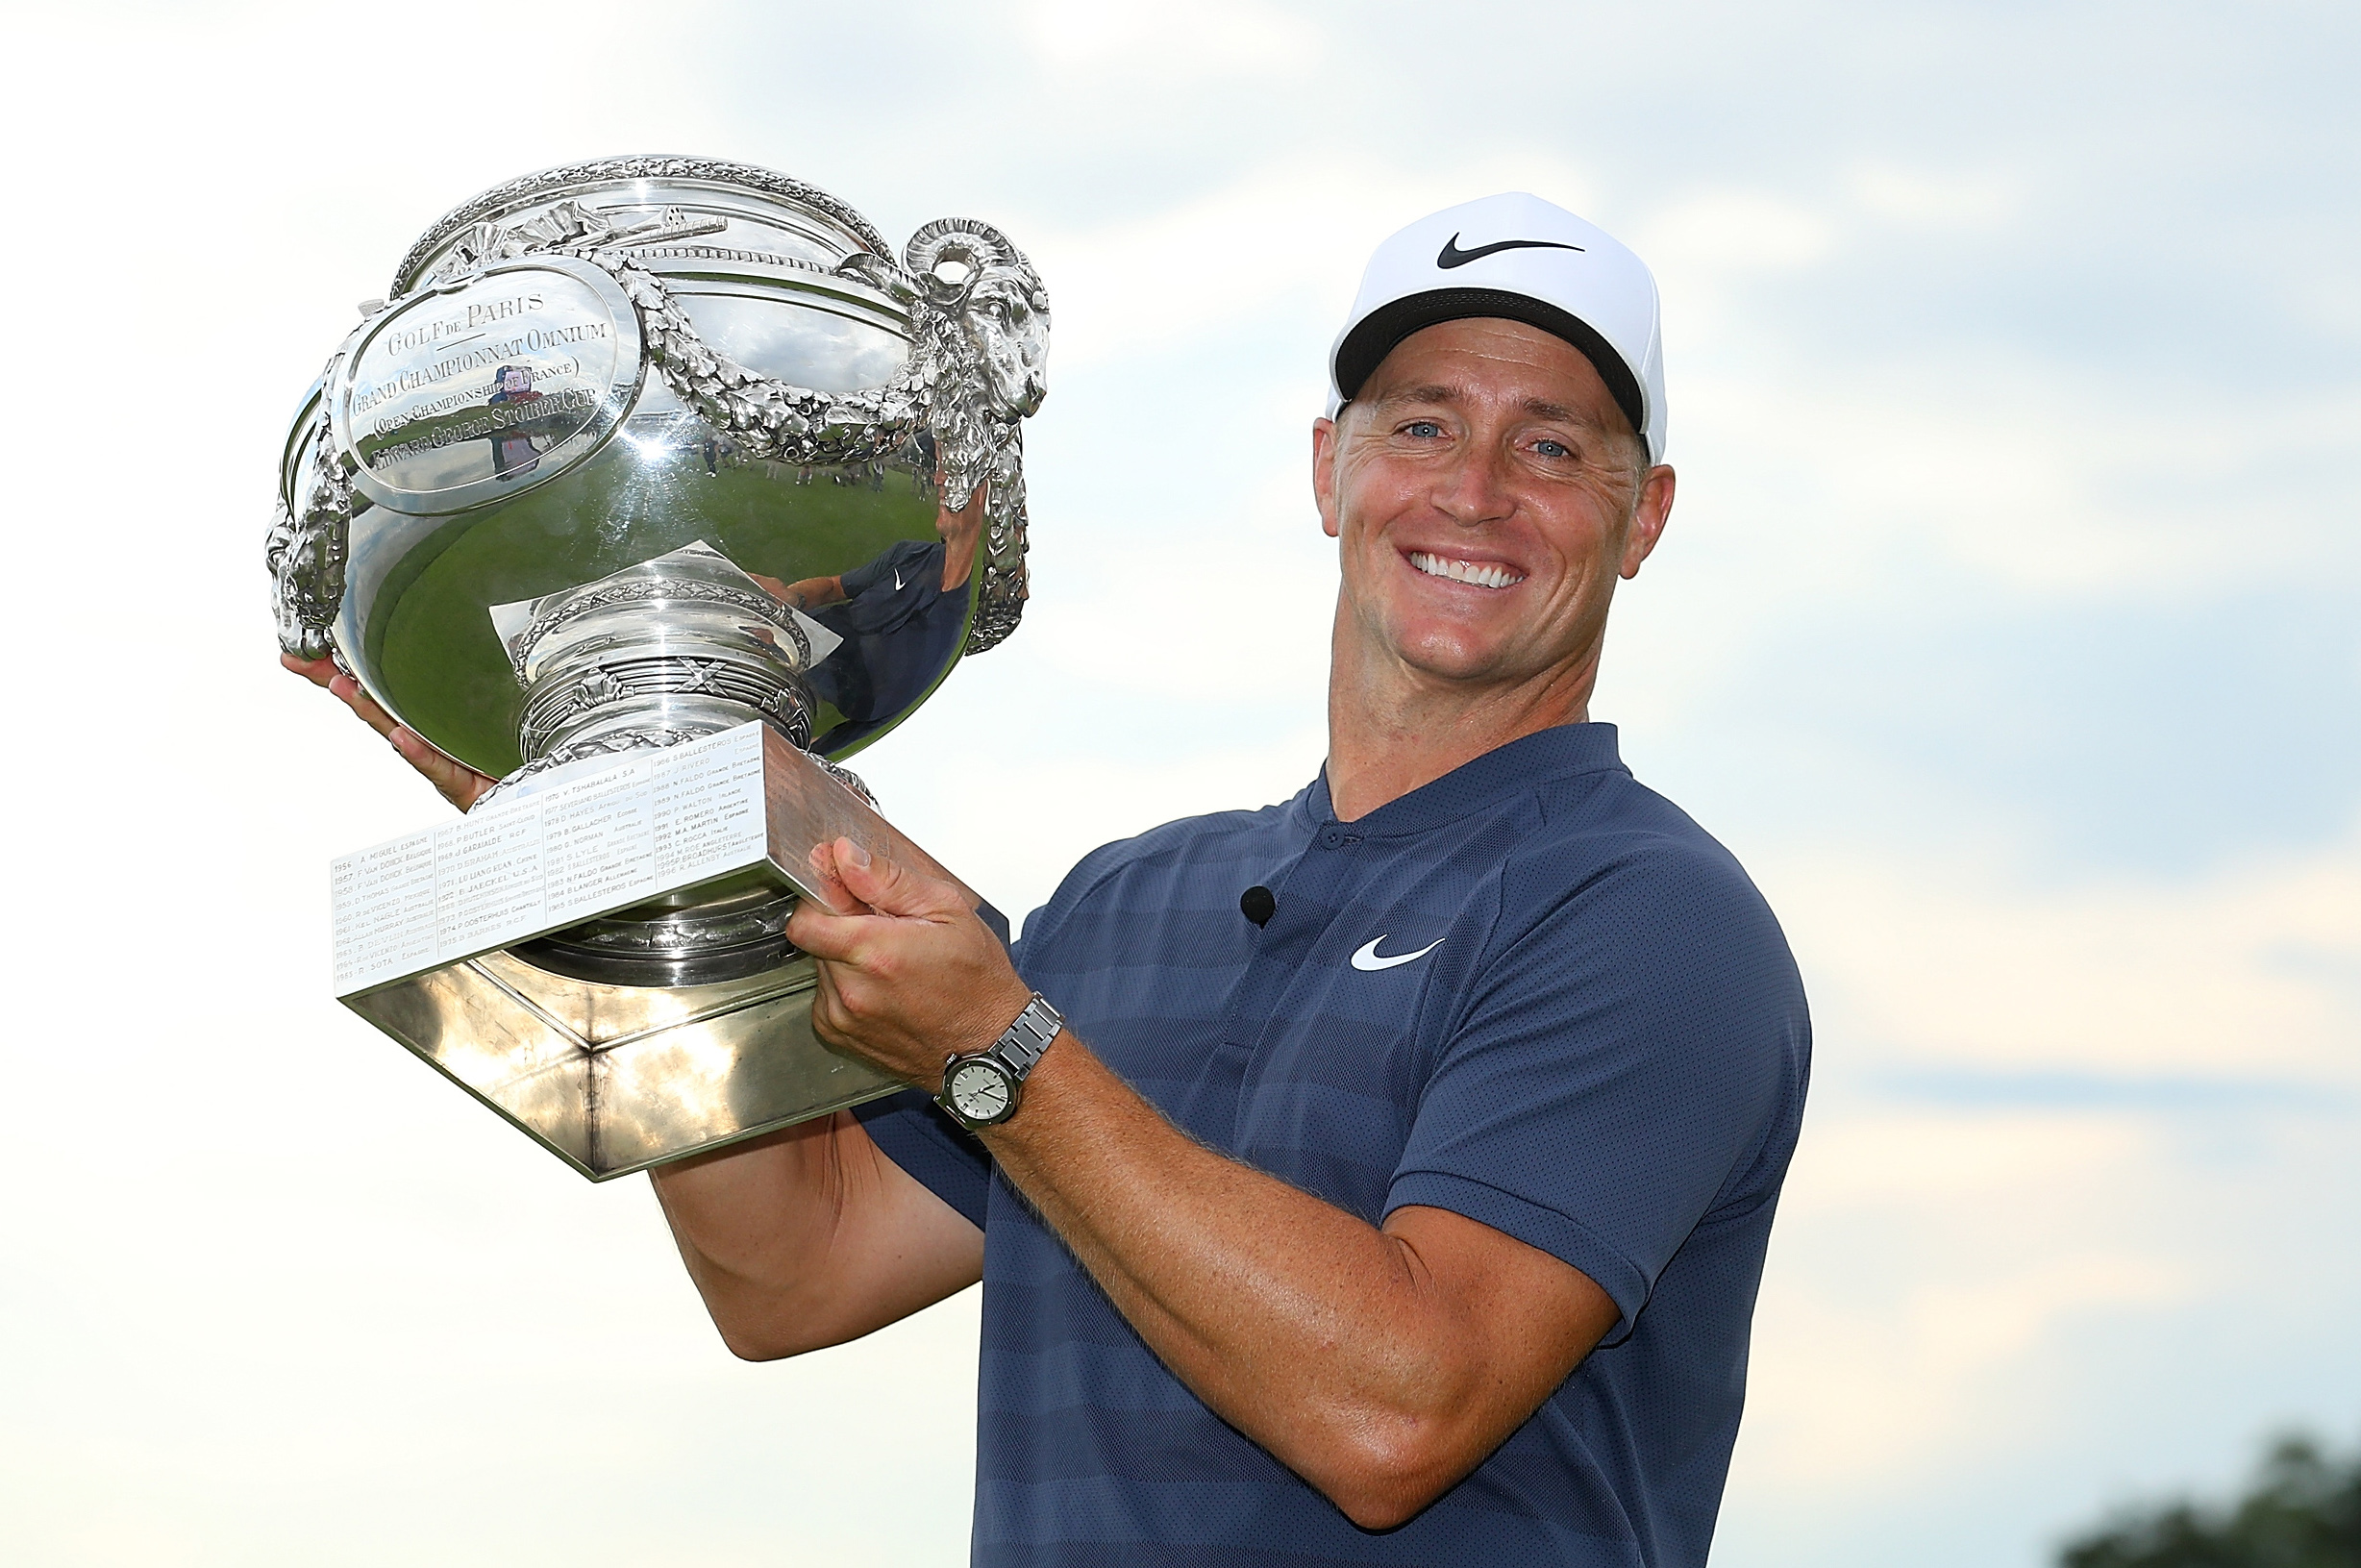 PARIS, FRANCE - JULY 01: Alex Noren of Sweden celebrates with the trophy after winning the HNA Open de France at Le Golf National on July 1, 2018 in Paris, France. (Photo by Warren Little/Getty Images)